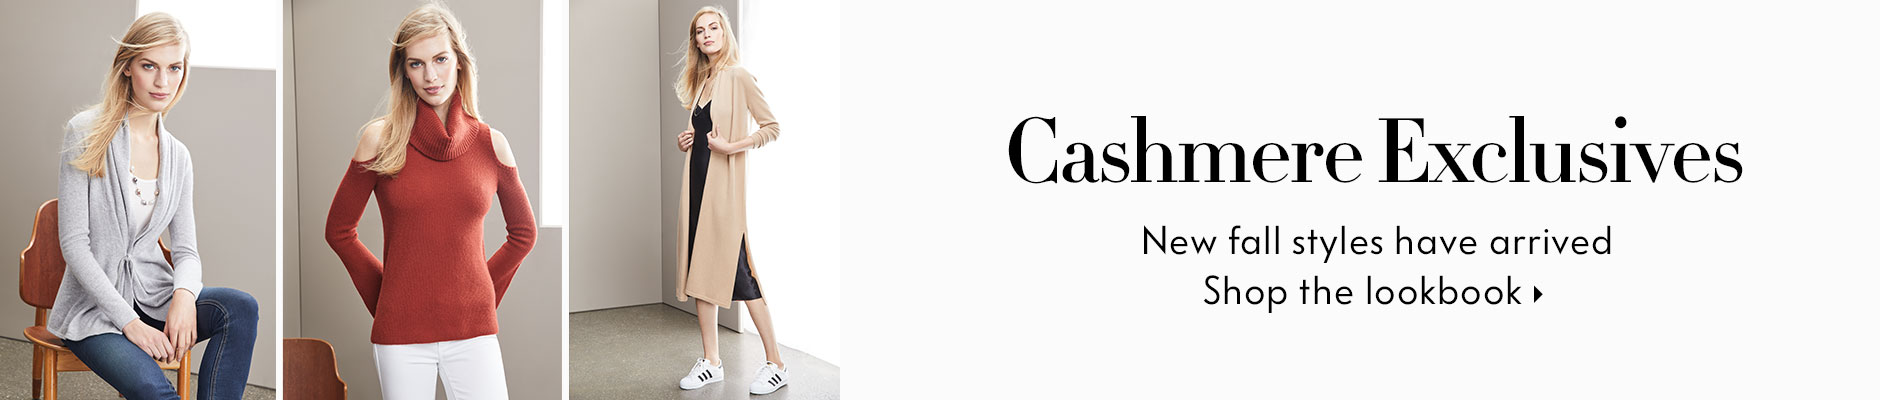 Cashmere Collection Lookbook